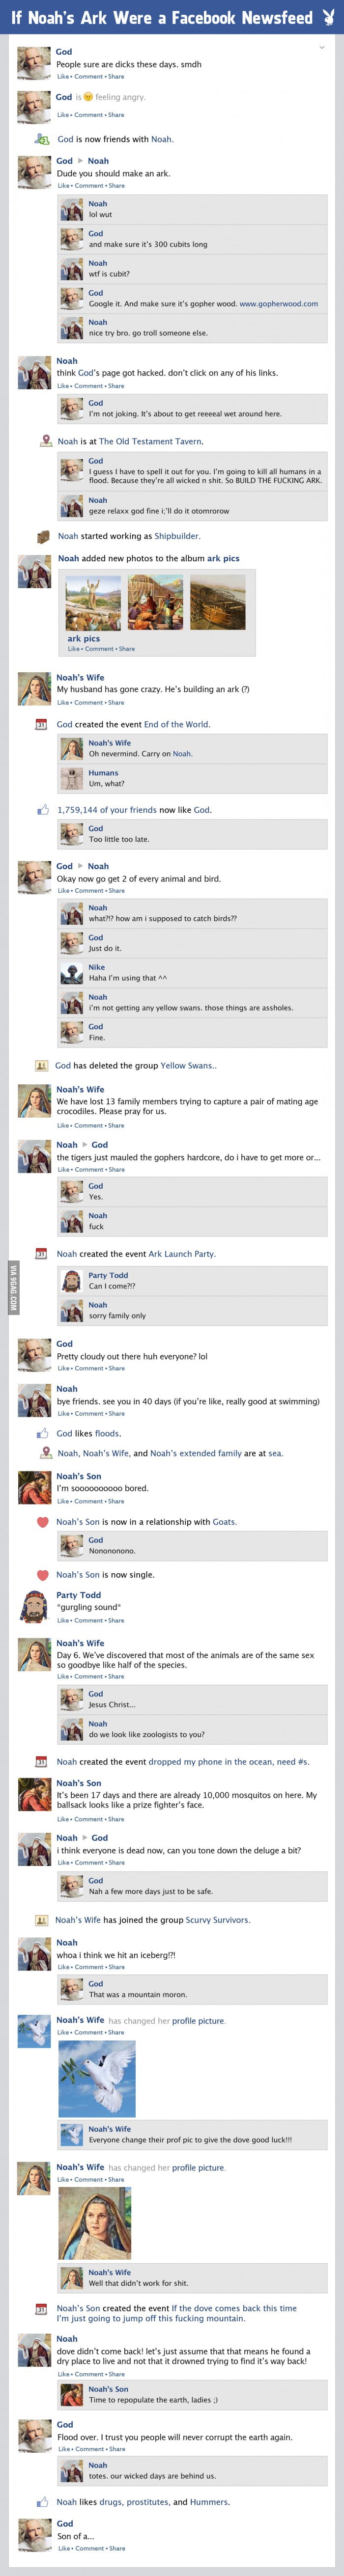 If Noah's ark was a Facebook feed